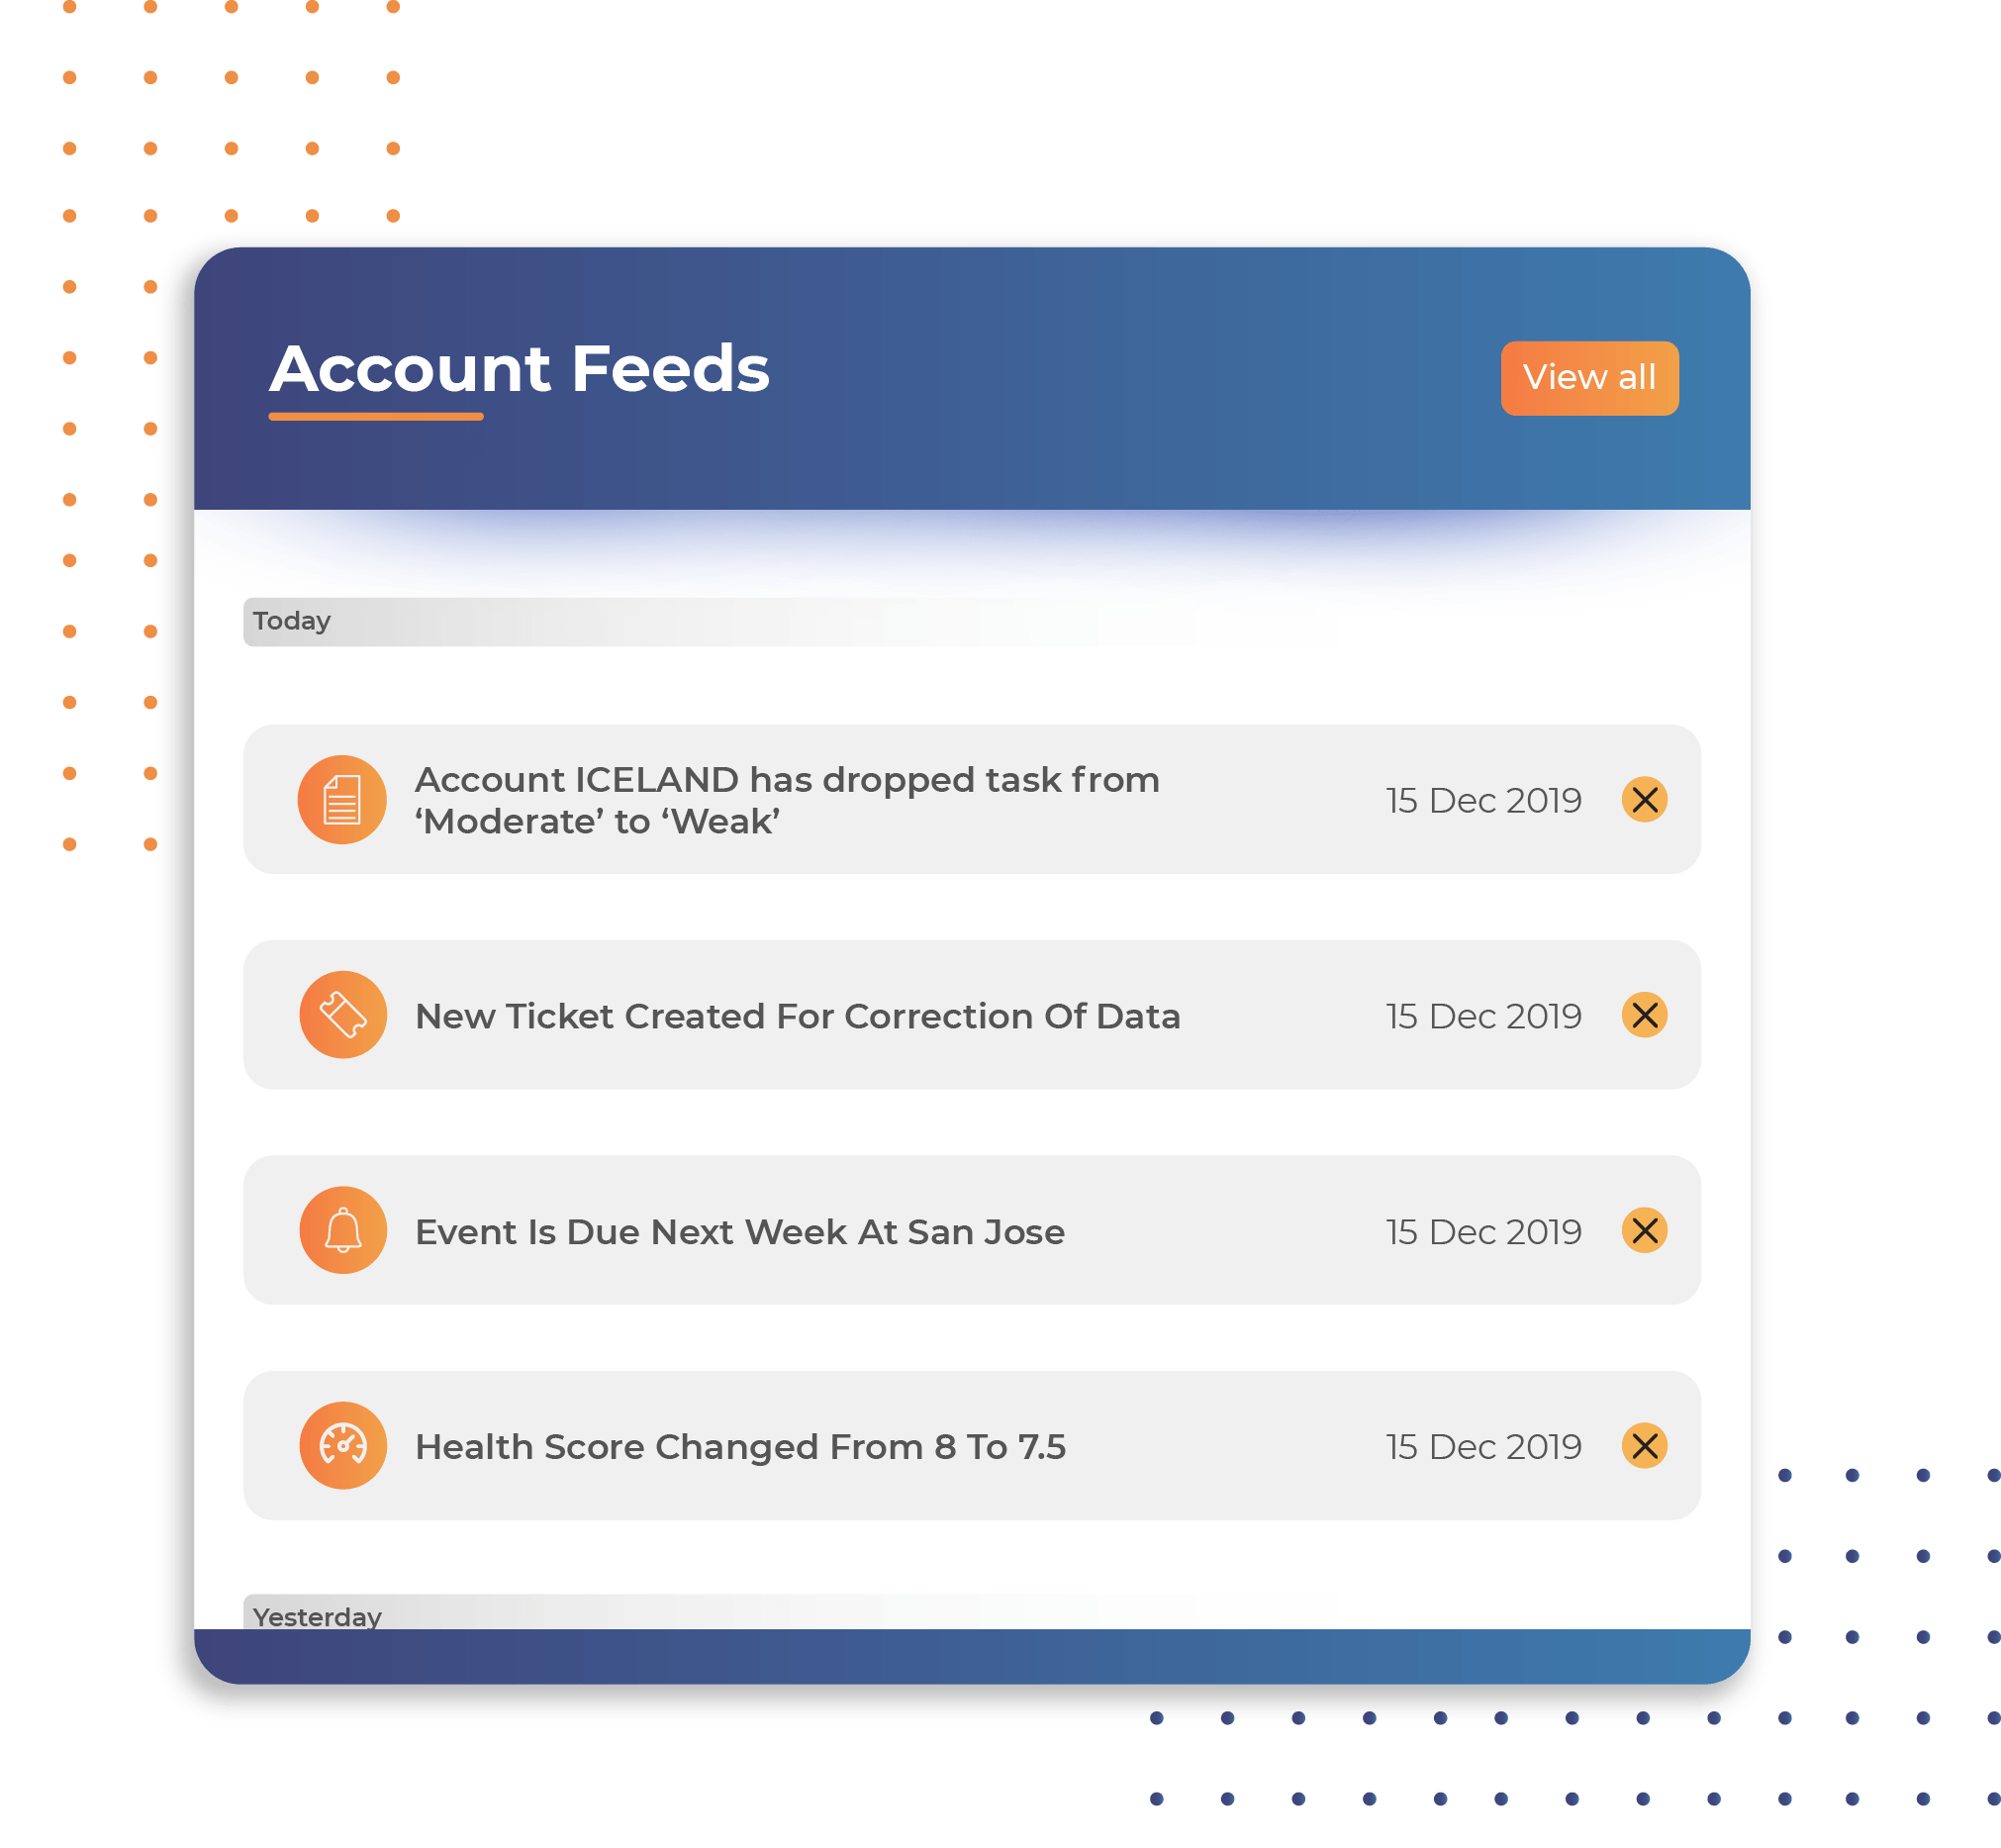 Task account feeds